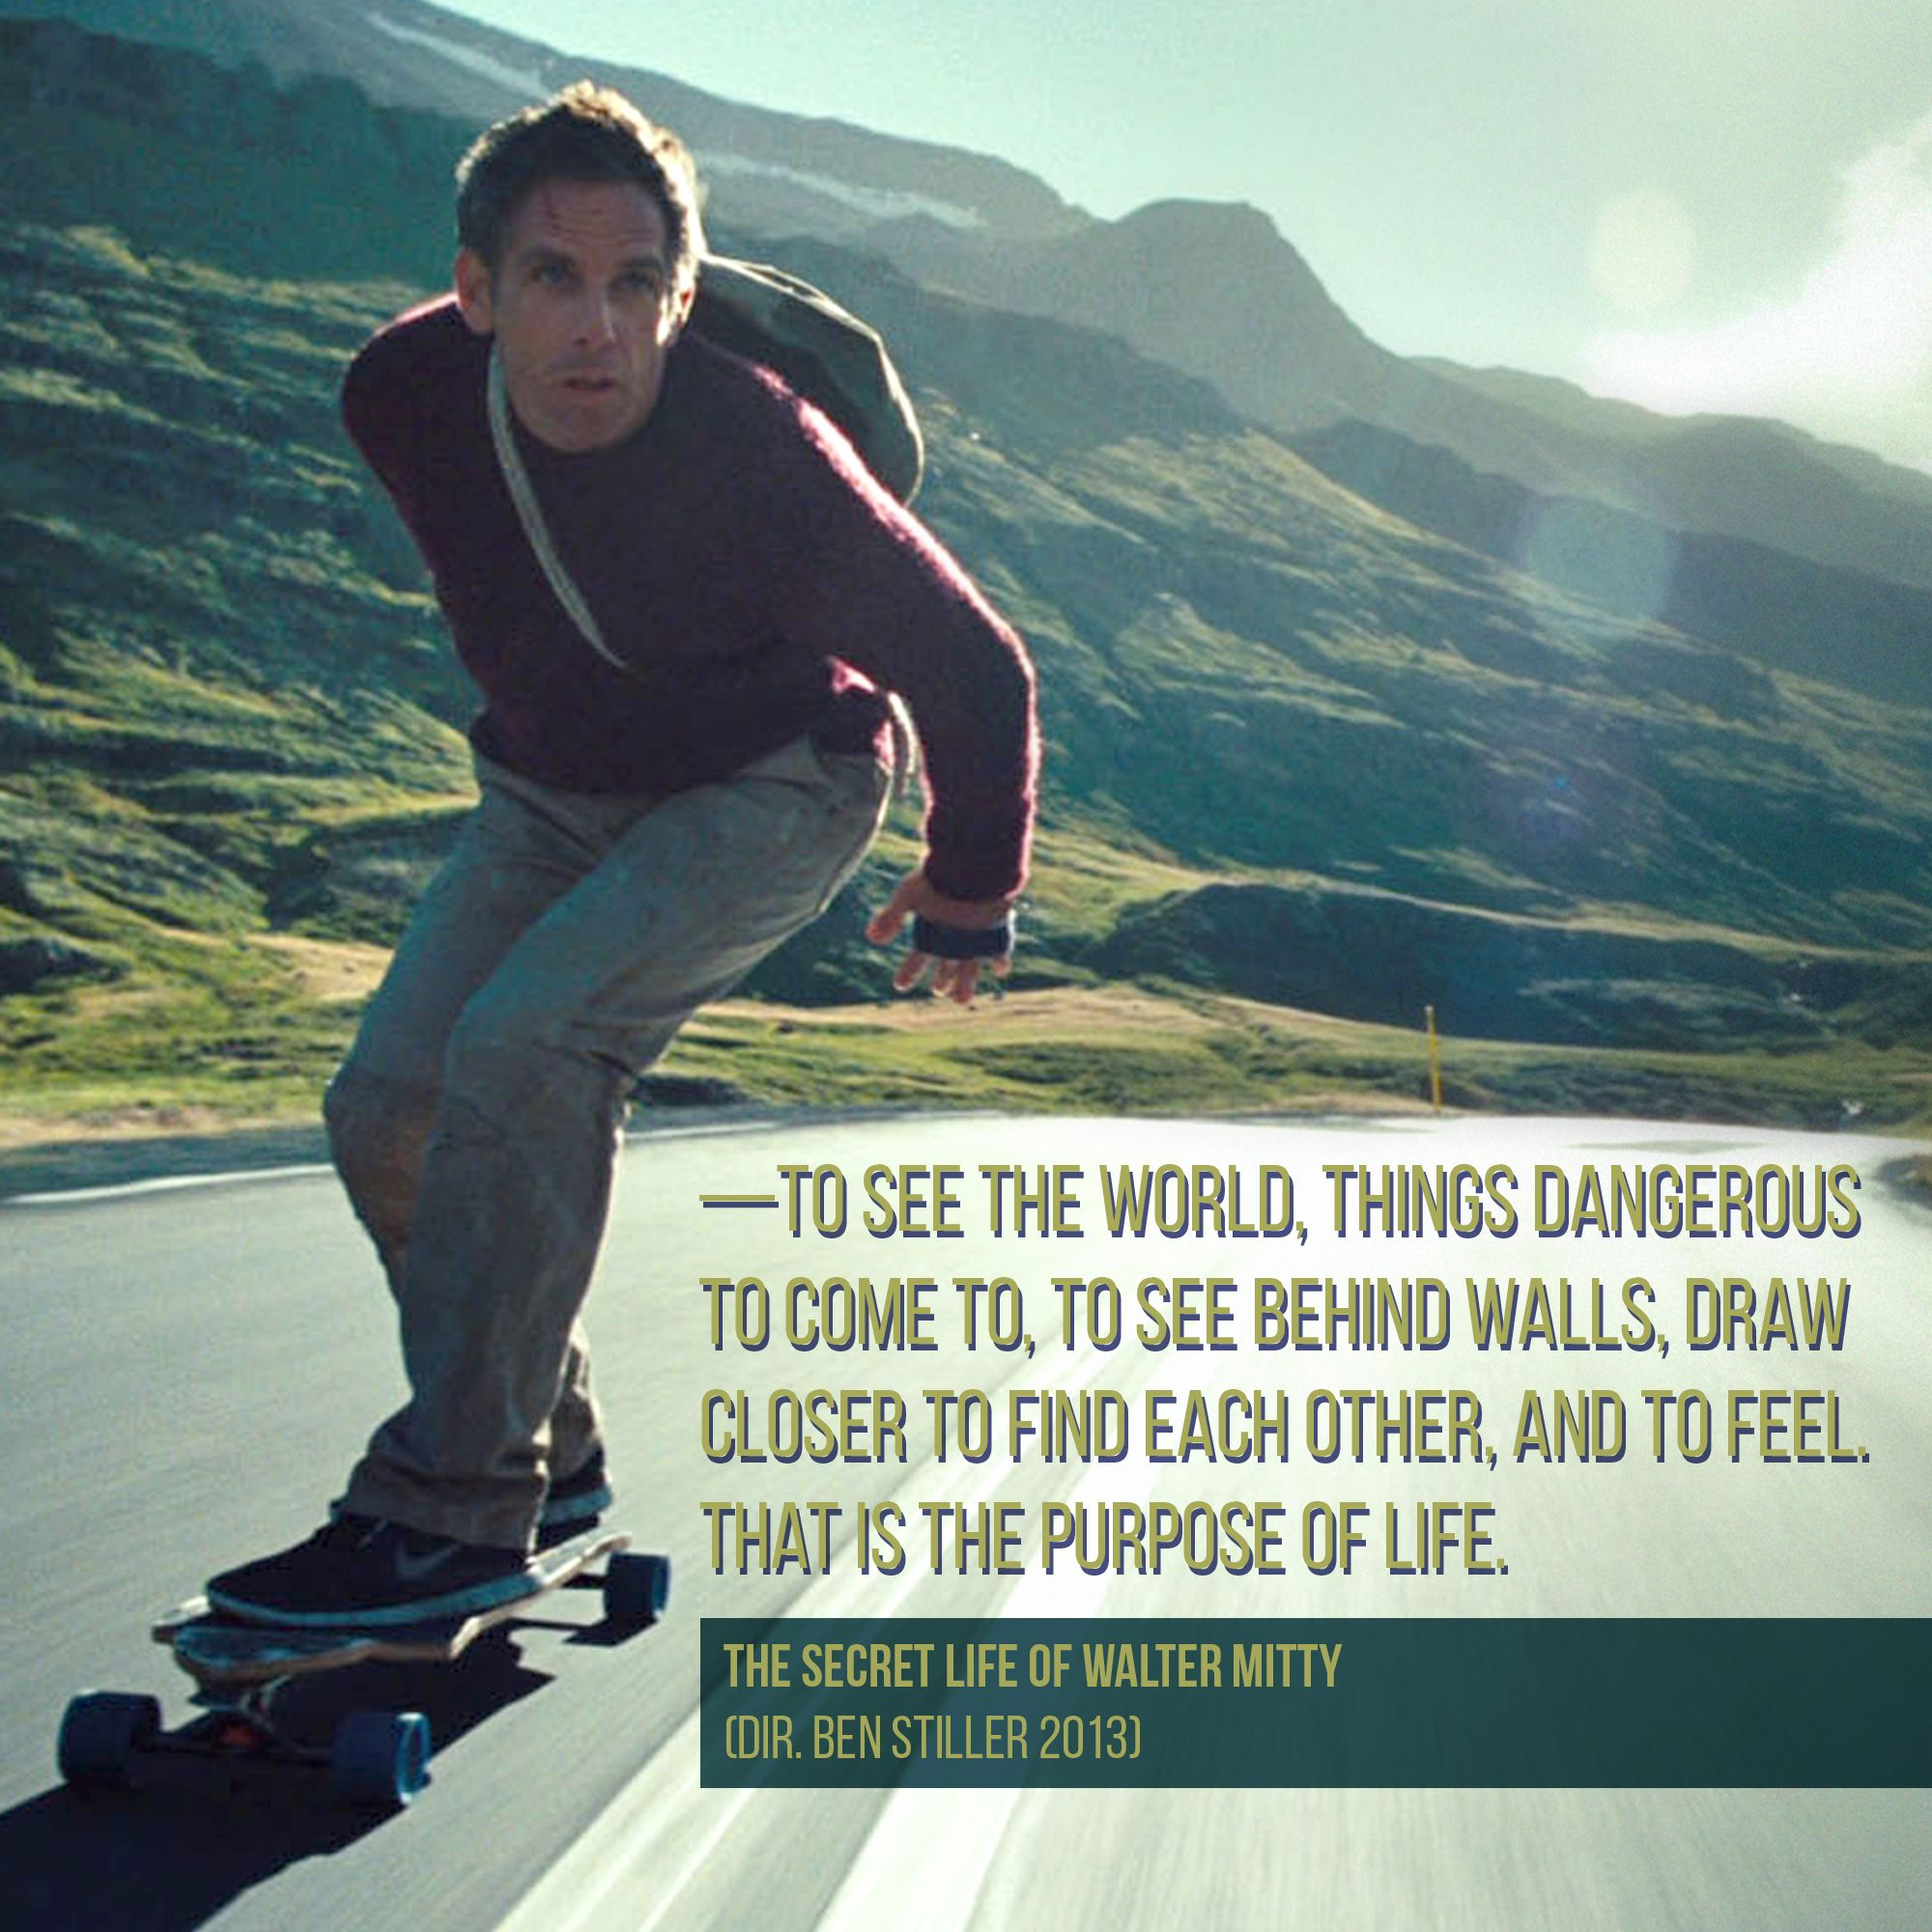 The Secret Life of Walter Mitty (With images) | Walter ...